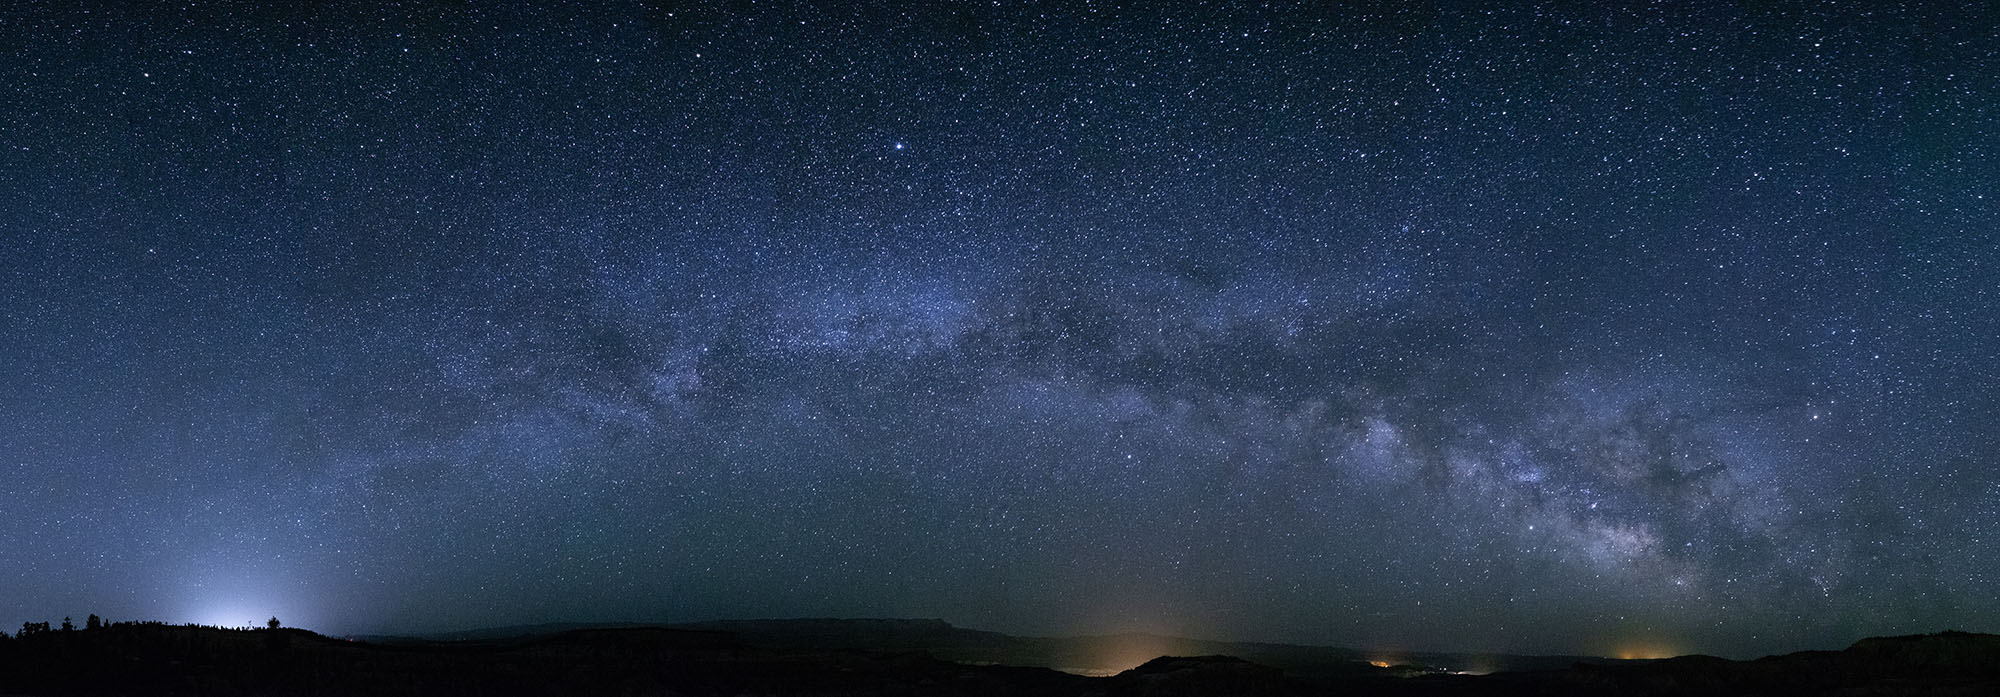 New moon. Stitched panorama. Fuji X-T2  with  10-24mm f/4  lens at 16mm. 30 seconds, f/4, ISO 6400.